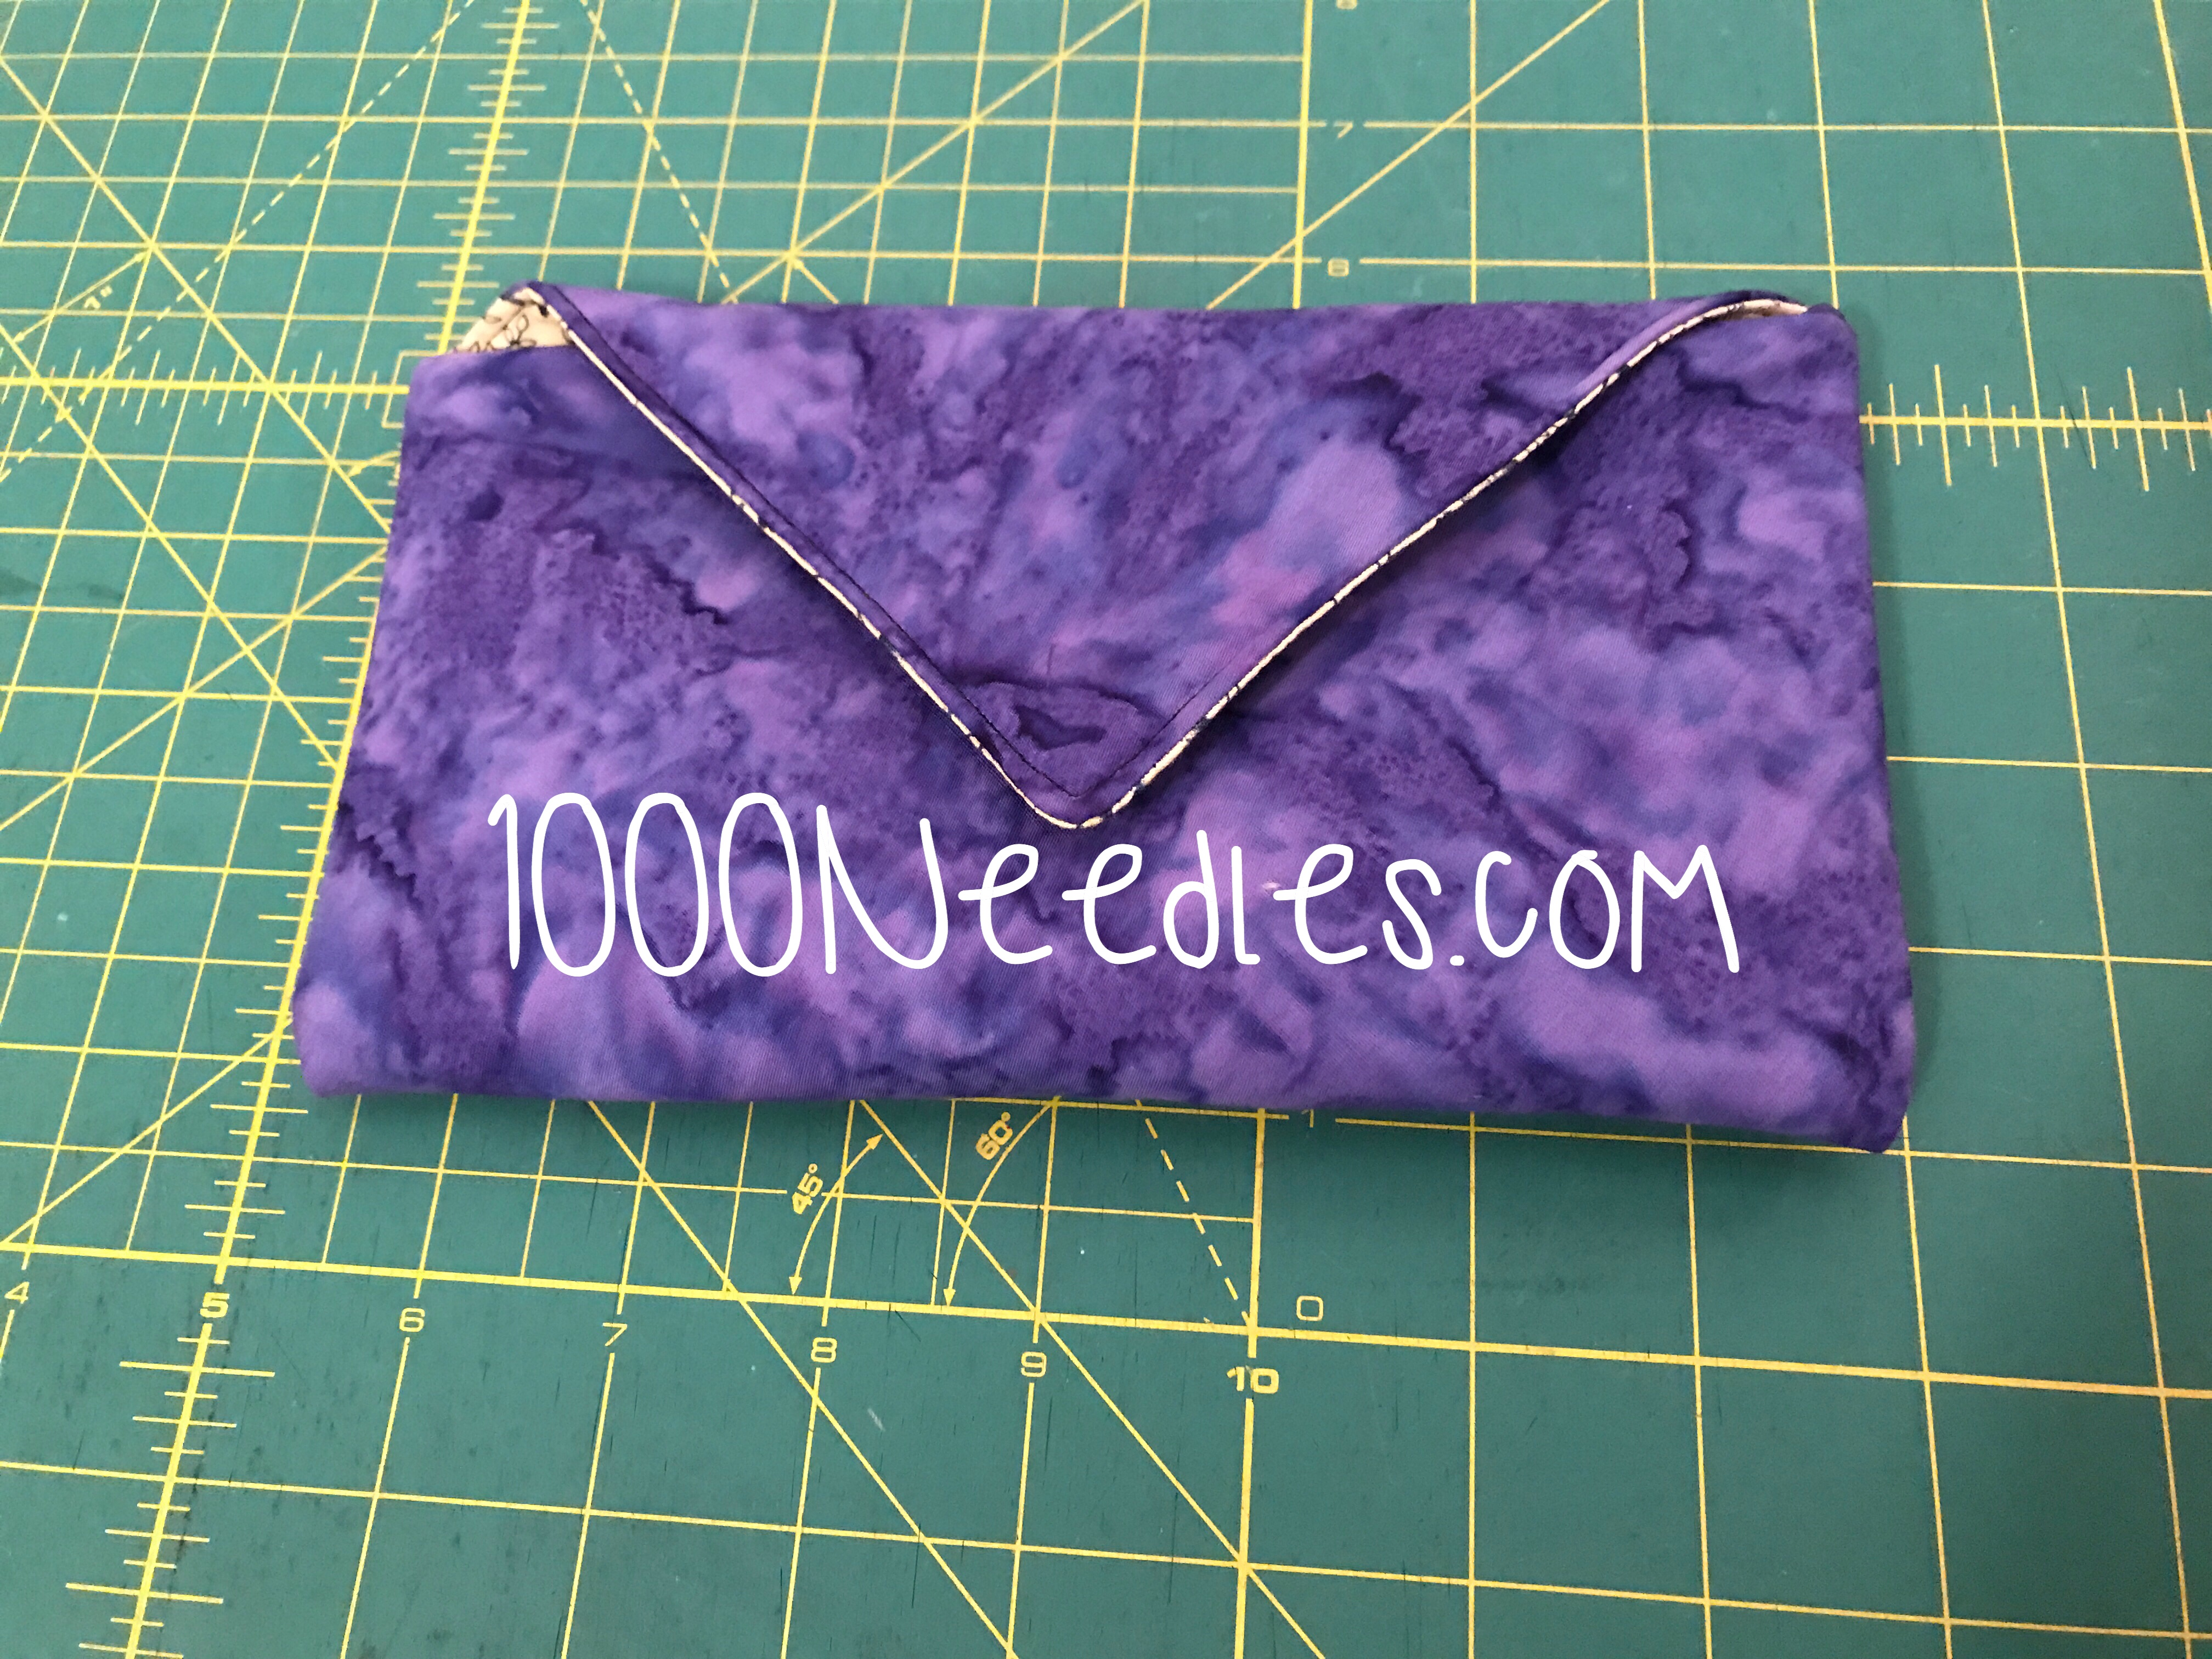 Knitting Expat Sock Club : Thousand needles quilting scrapbooking gardening and